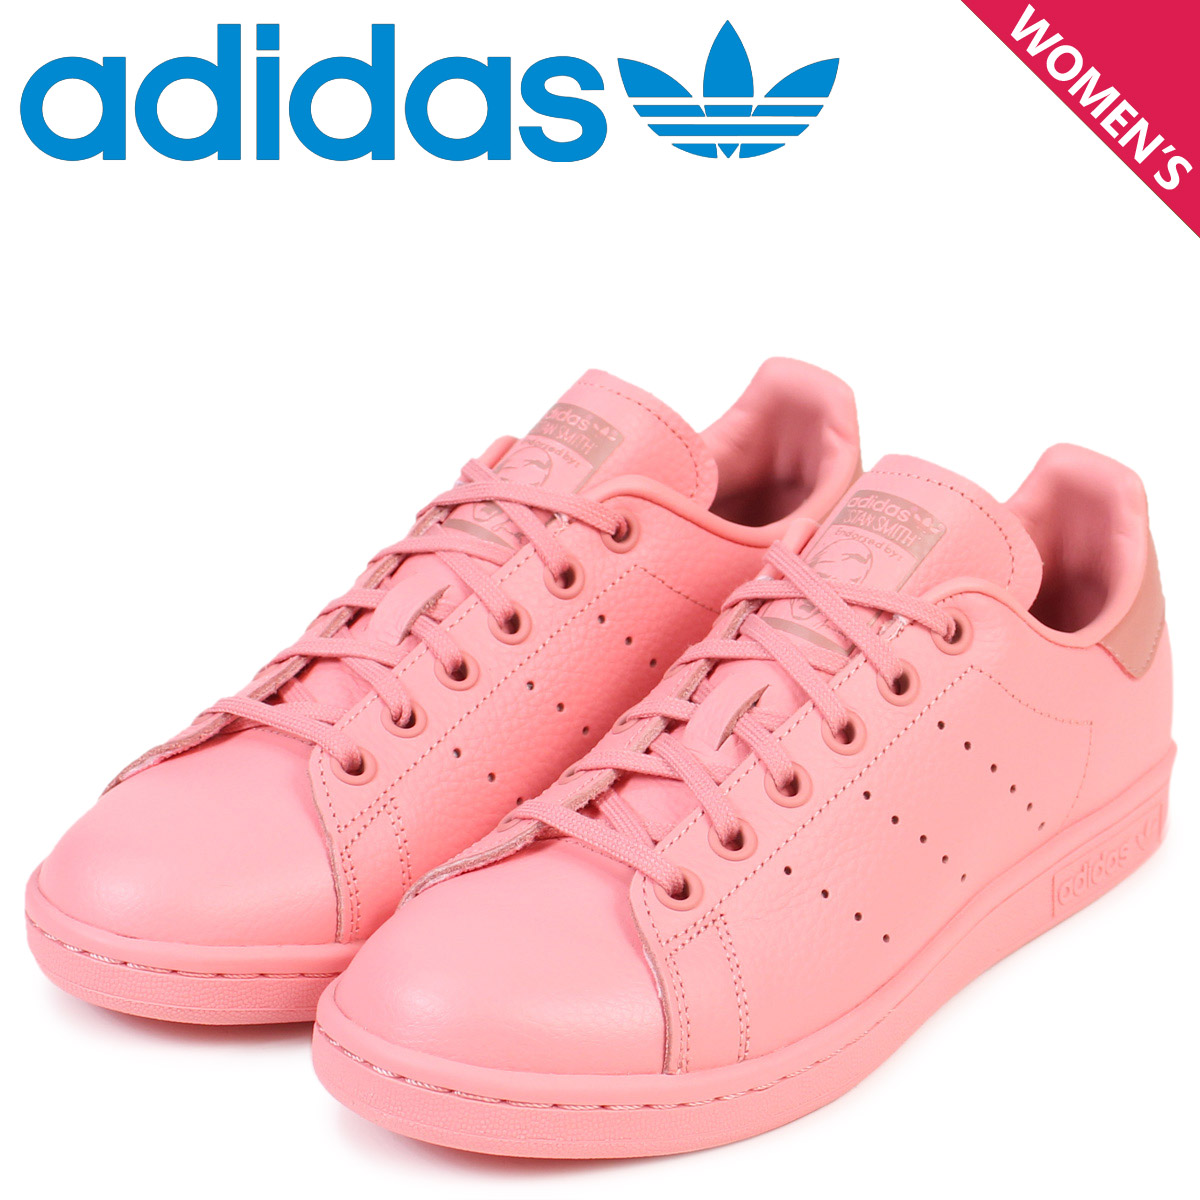 innovative design c7855 d218a adidas Originals Stan Smith Lady's Adidas sneakers STAN SMITH CP9809 shoes  pink